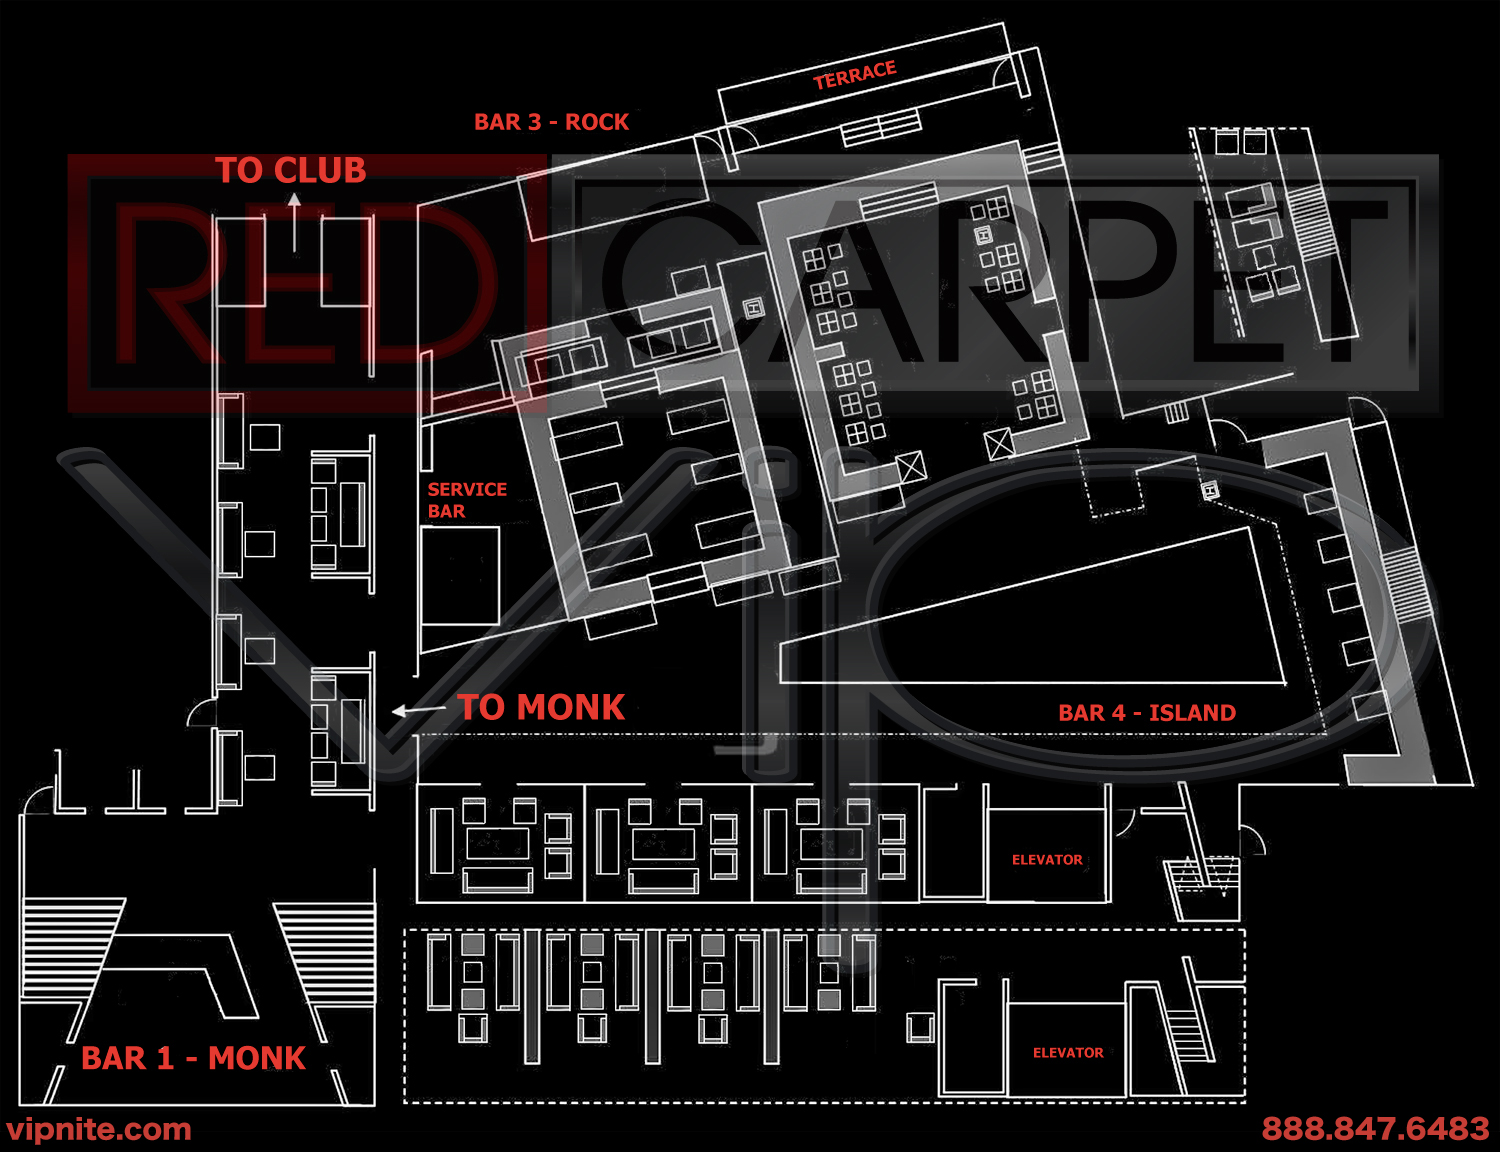 las vegas nightclub maps red carpet vip view large map here